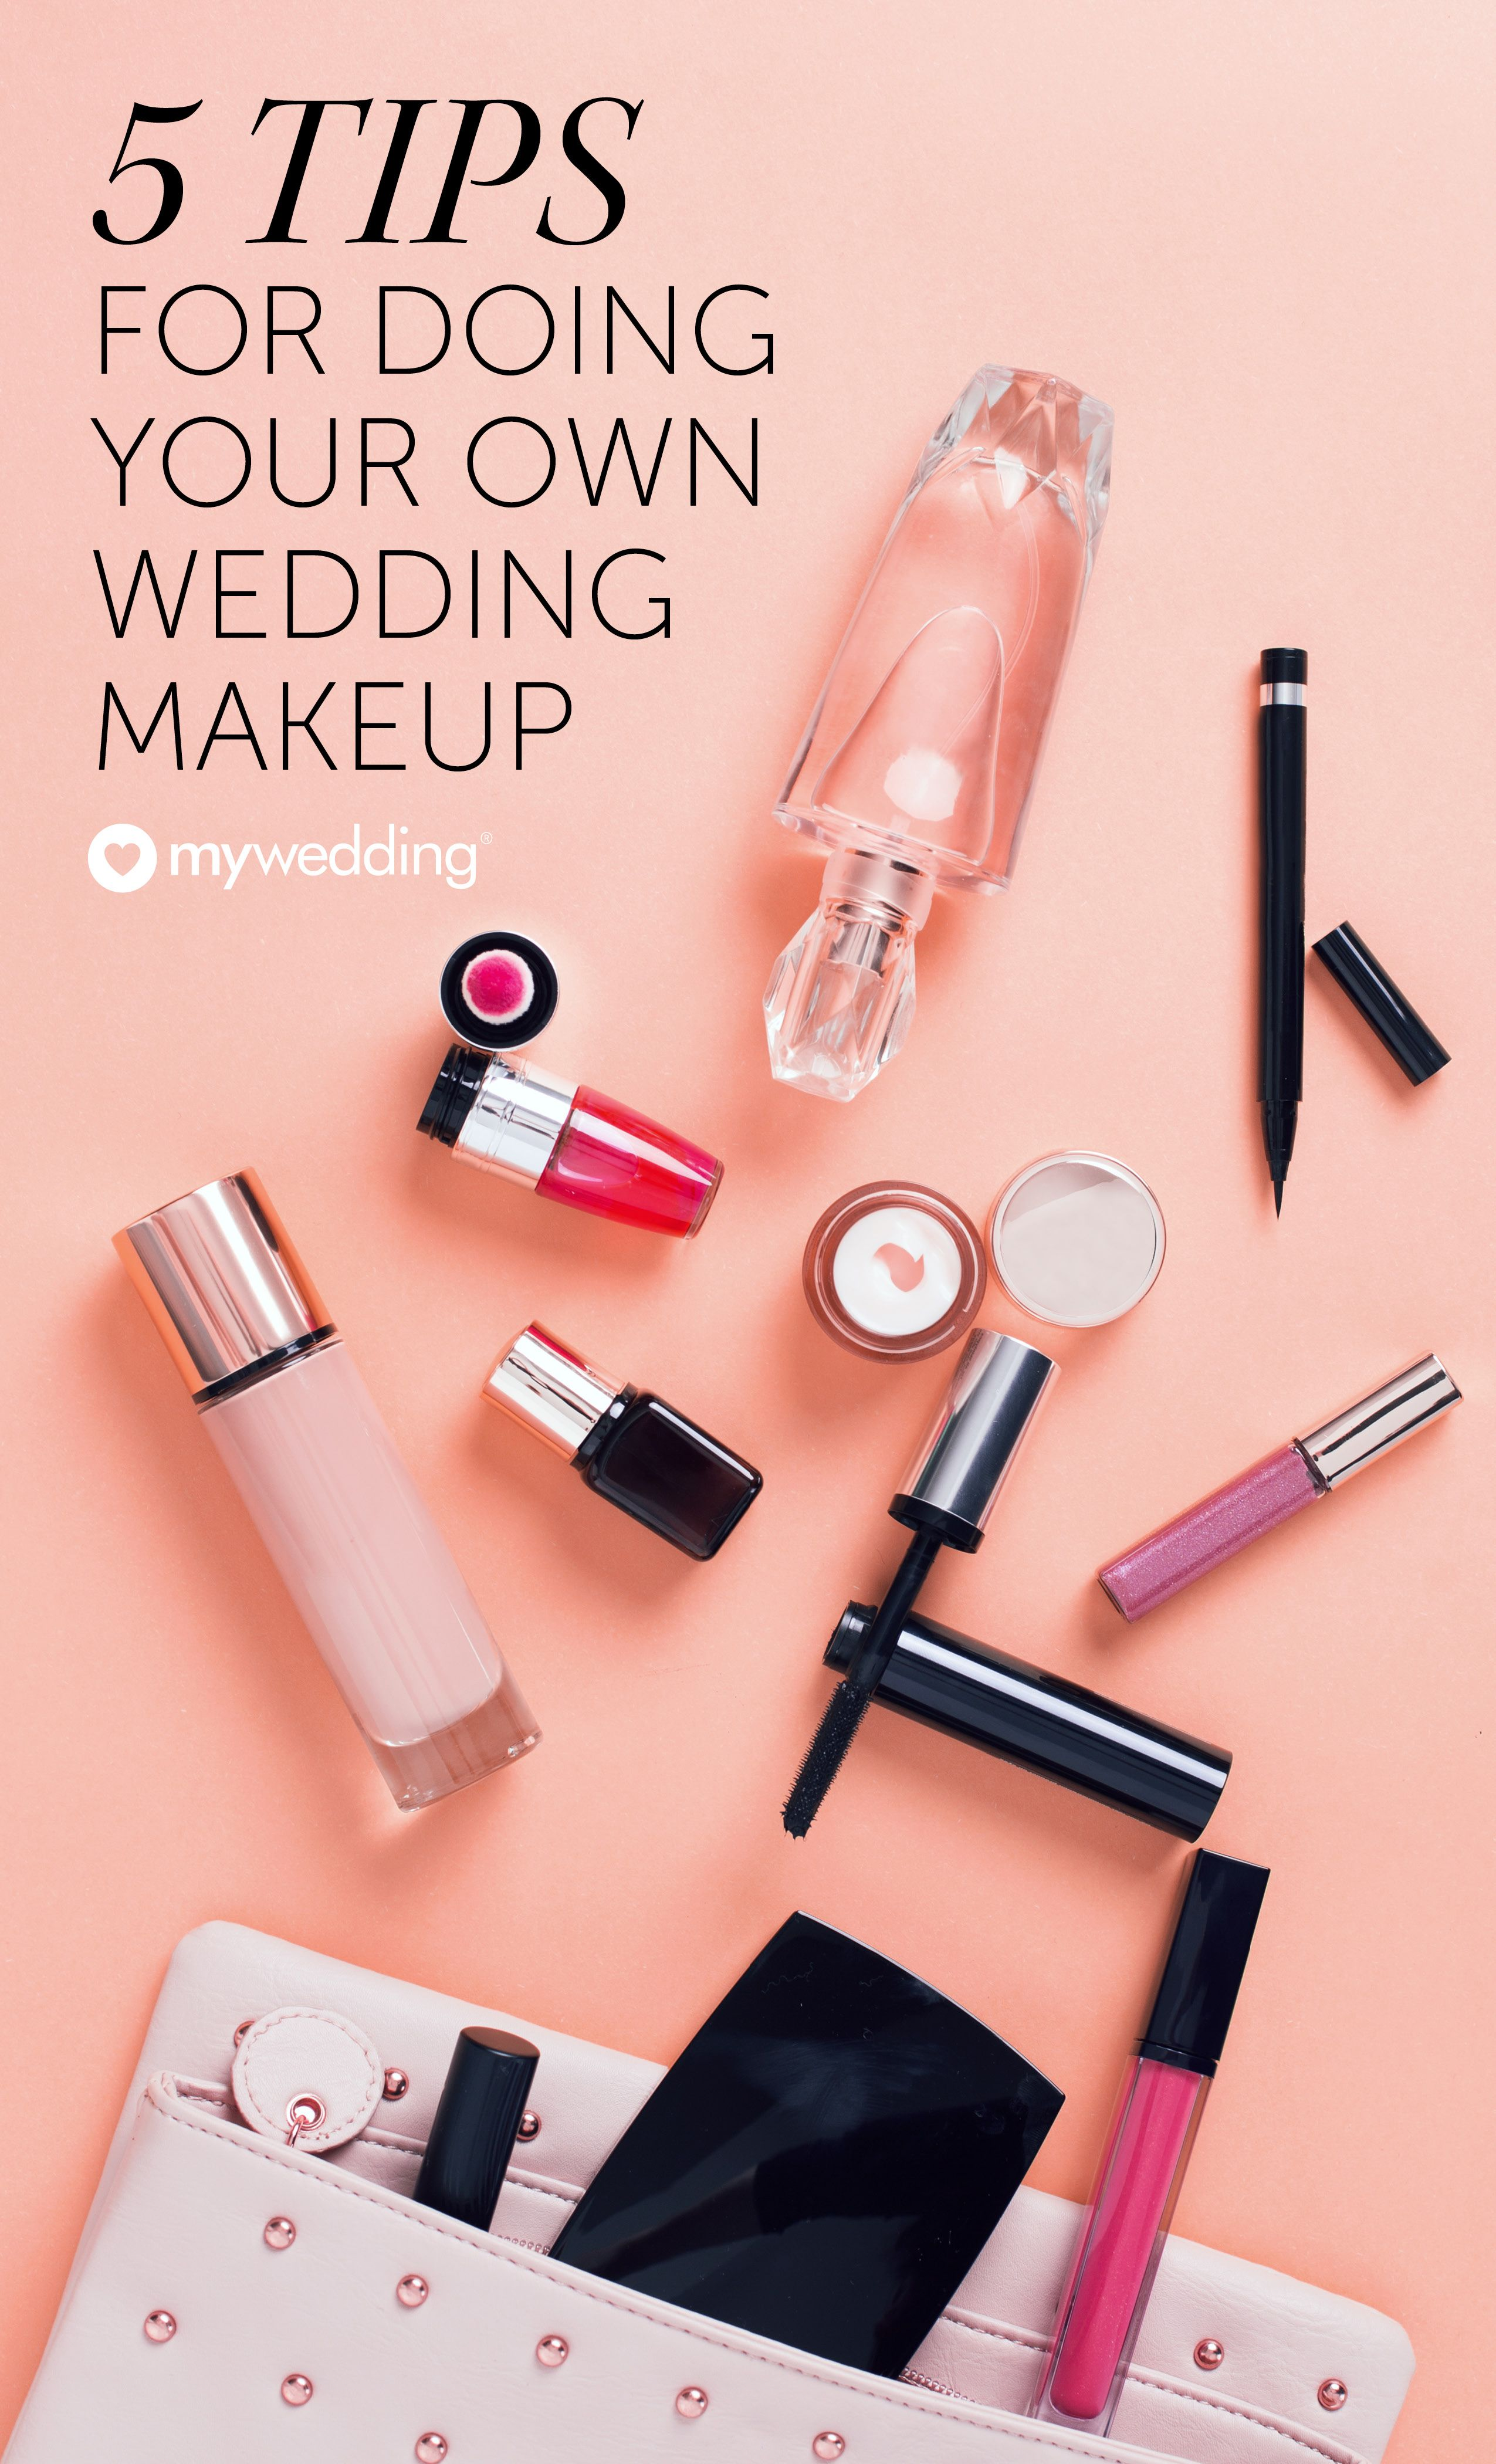 Makeup Advice for Doing Your Own Wedding Day Look - mywedding